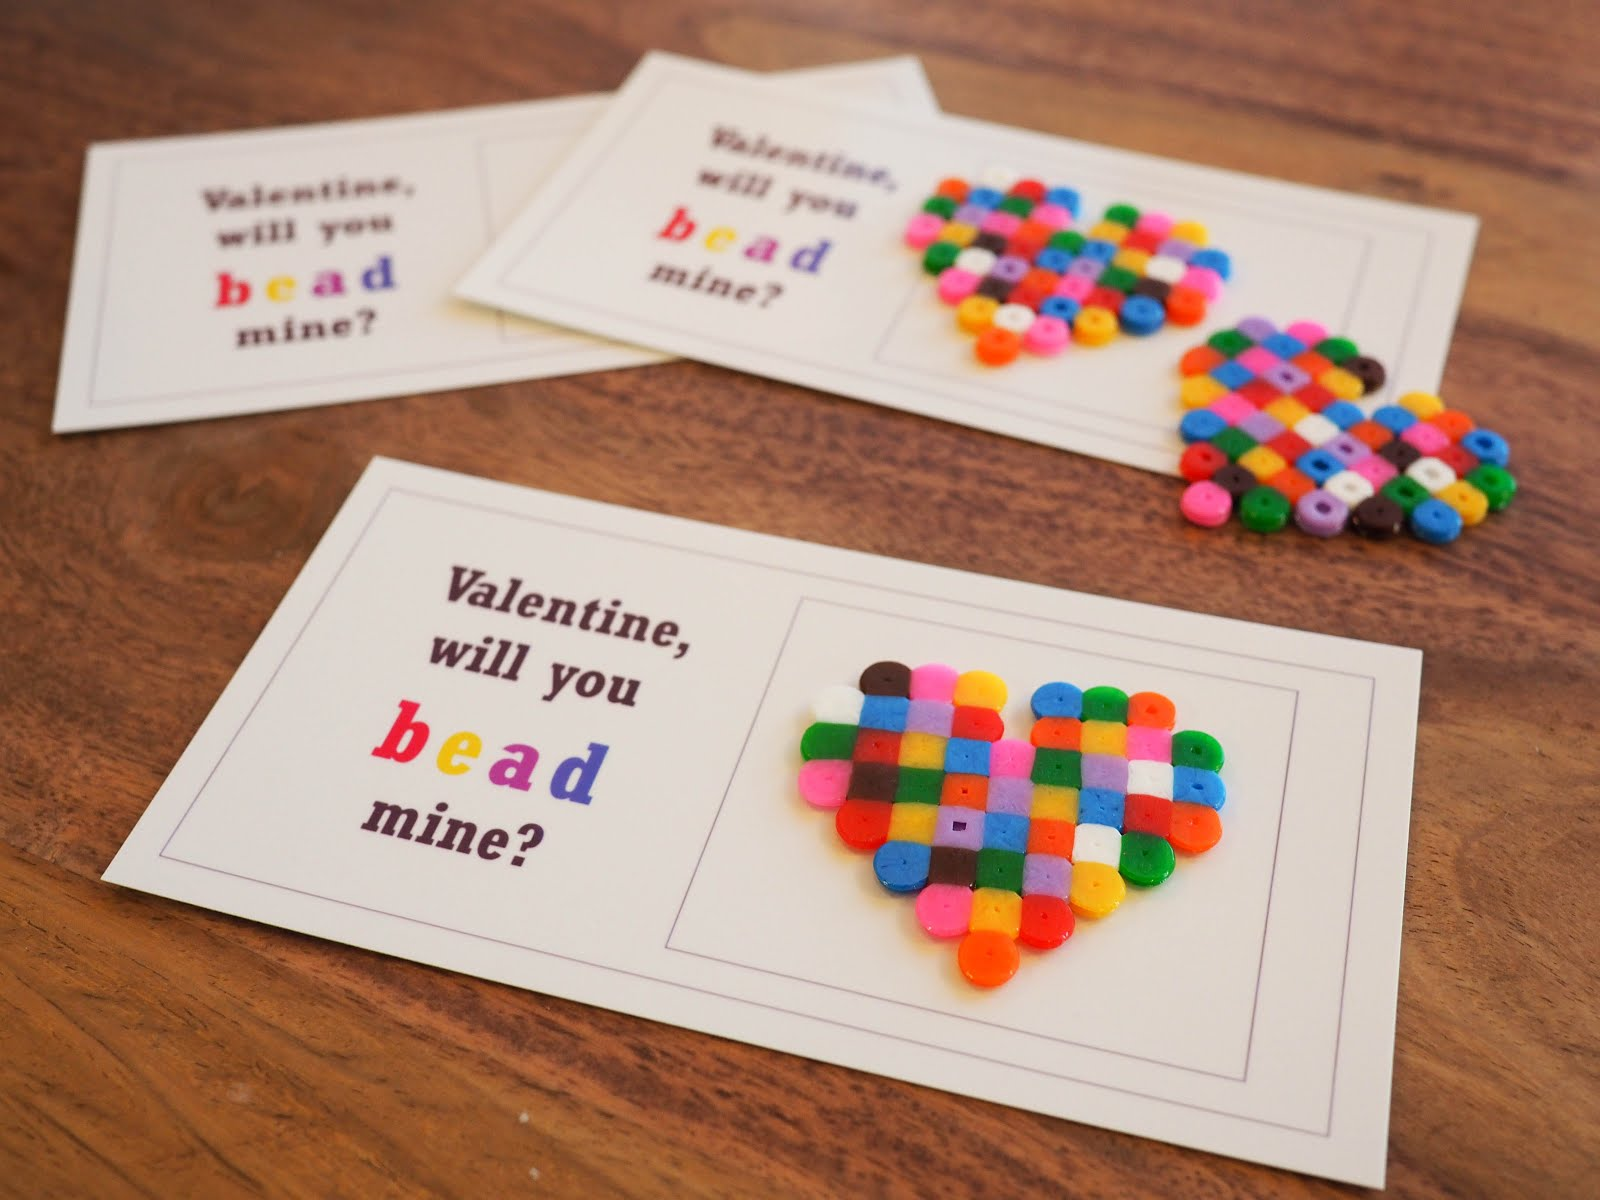 Valentine, Will You Bead Mine?